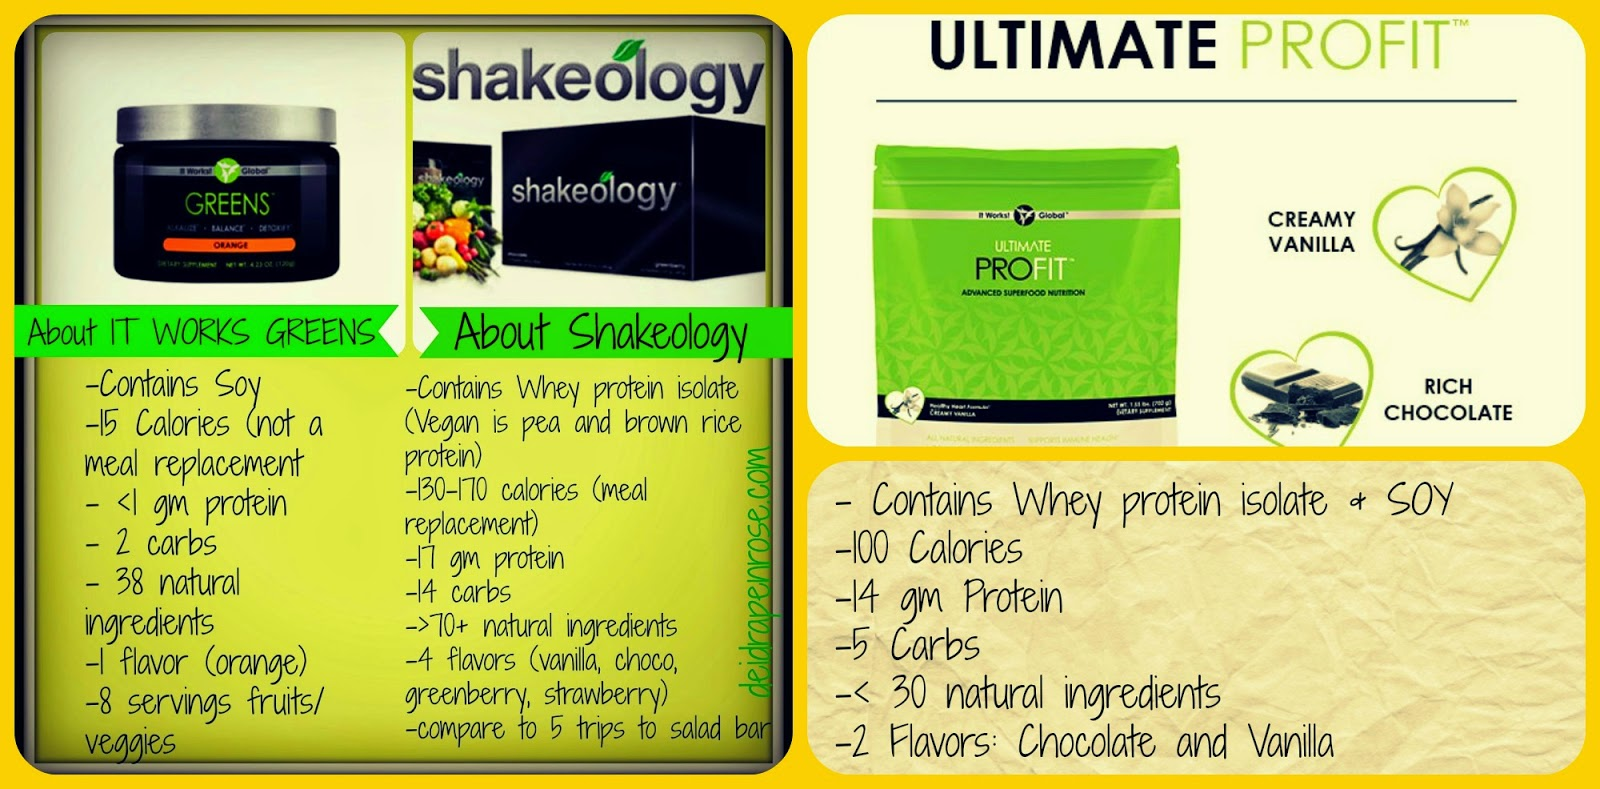 Shakeology, It works greens, healthy eating, protein shakes, clean eating, meal replacements drinks, compare shakeology with greens, gluten free, soy free, weight loss, diet, nutrition, Deidra Penrose, 5 star elite beach body coach, shakeology vs pro fit, shakeology vs it works shakes, pro fit, team beach body vs it works wraps